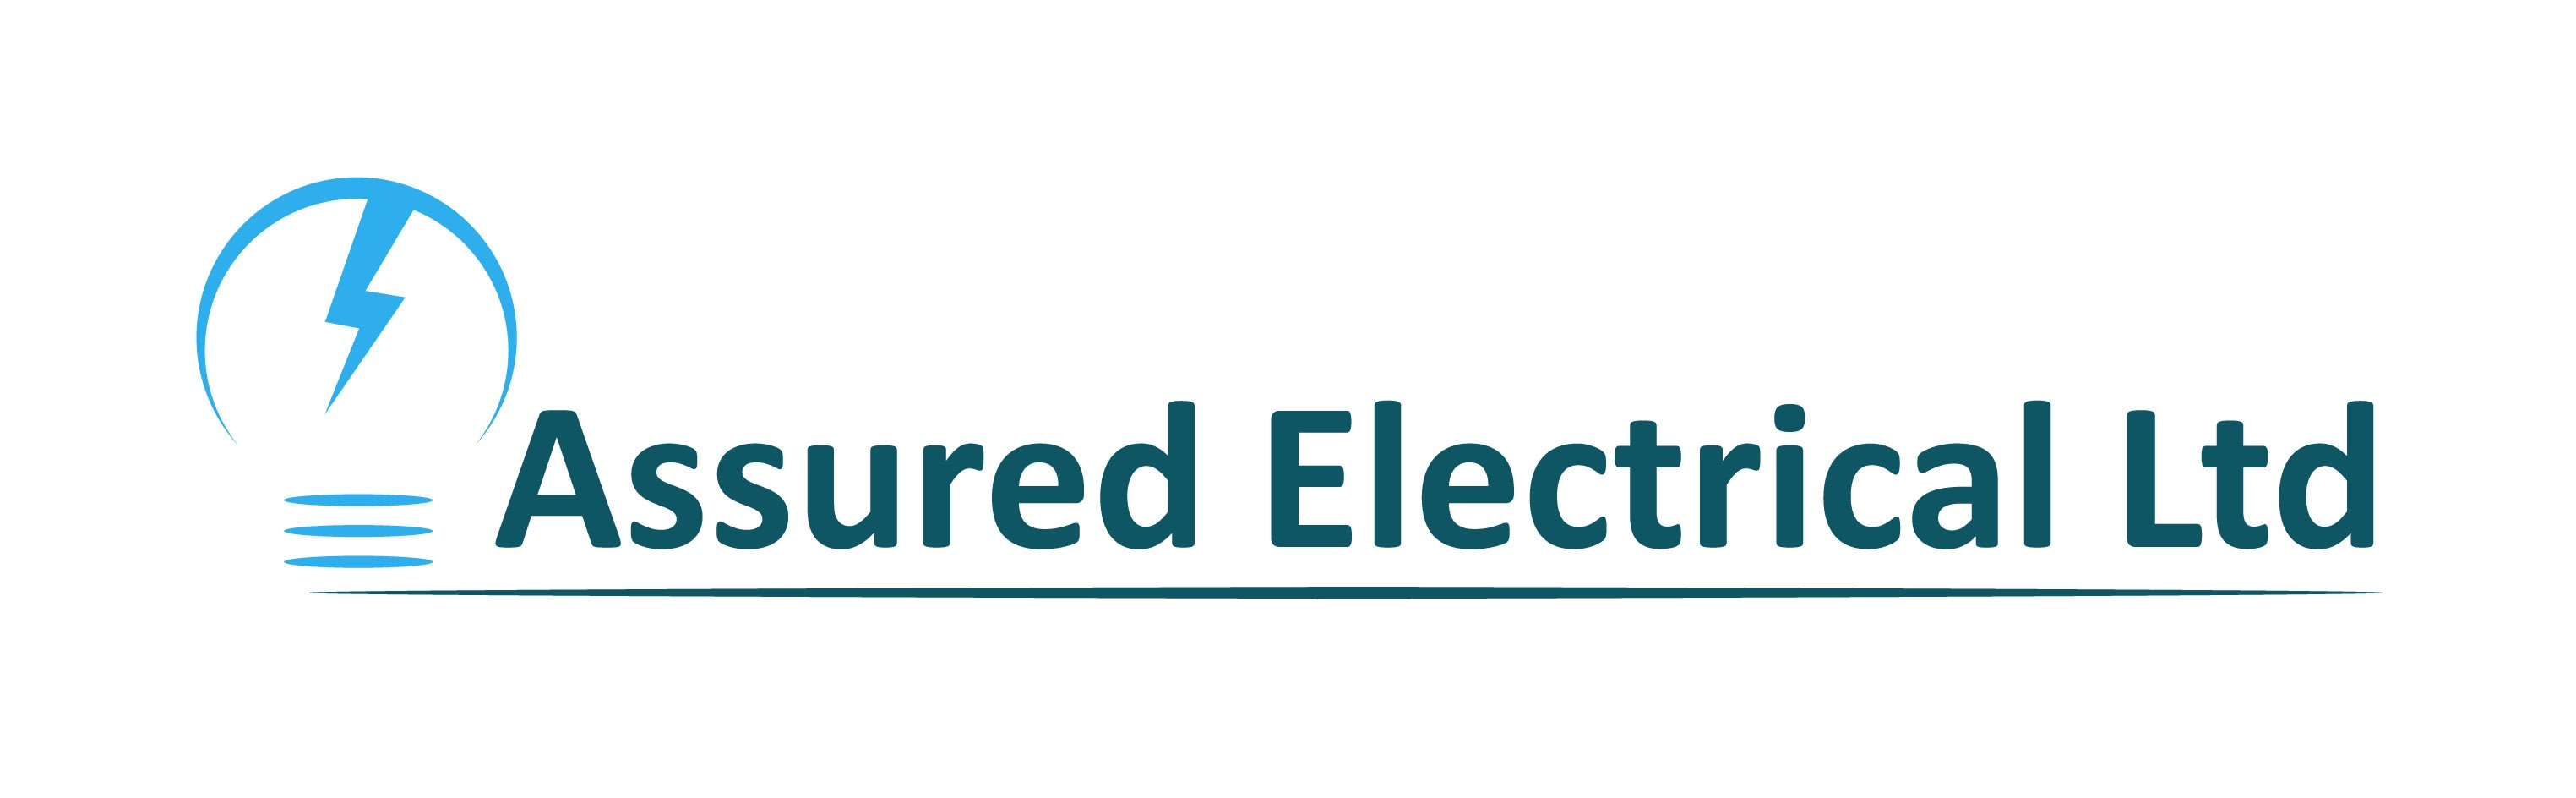 Assured Electrical Ltd